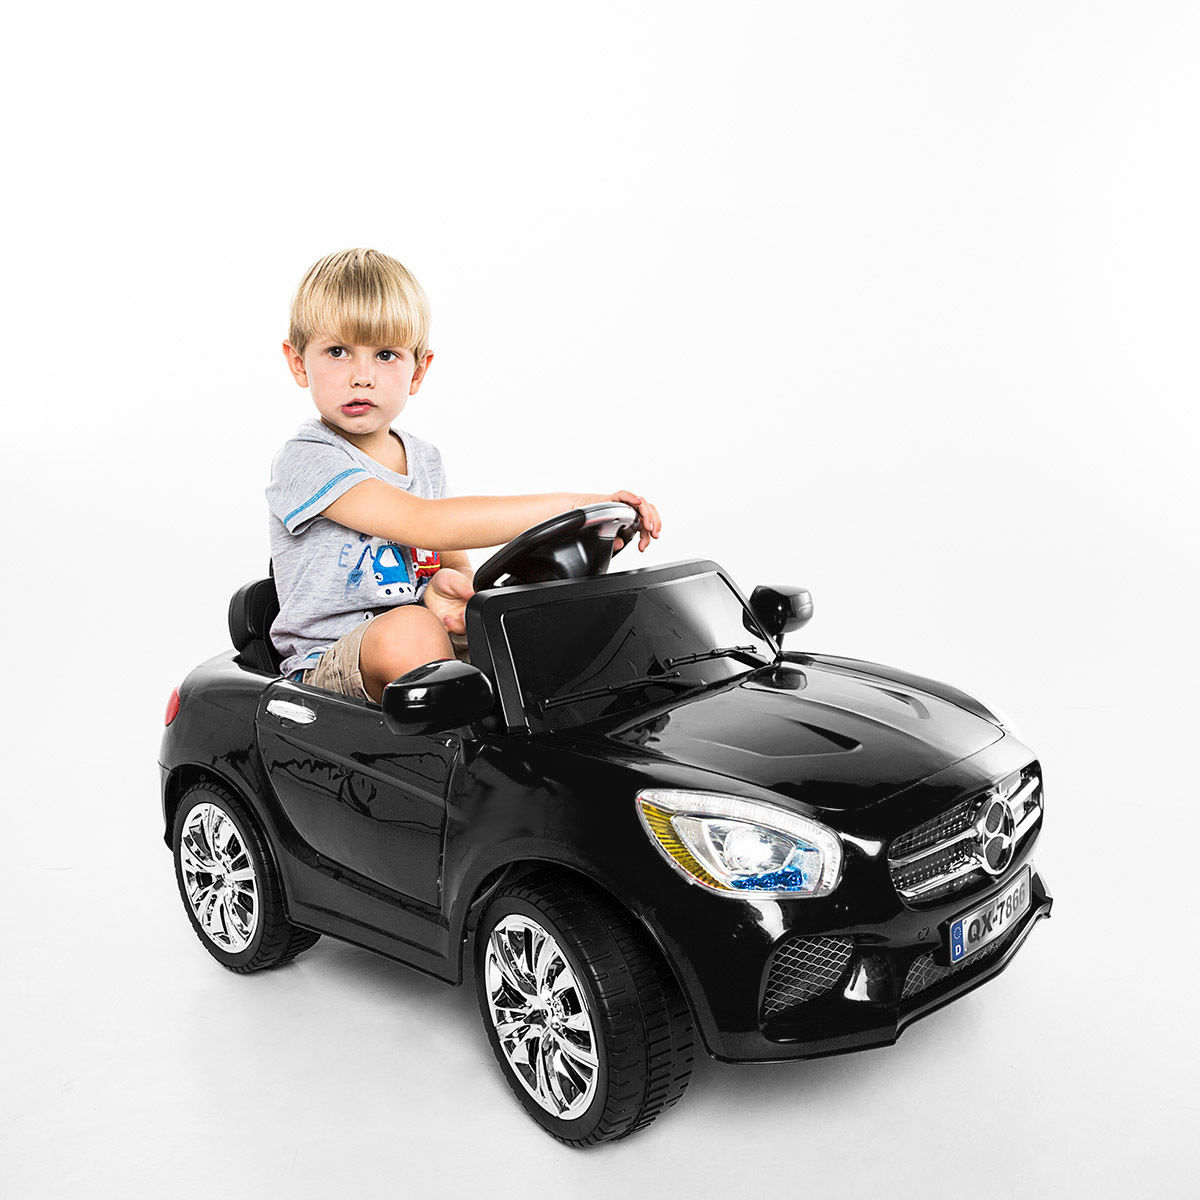 Costway 6V Kids Ride On Car RC Remote Control Battery Powered w  LED Lights MP3 Black by Costway